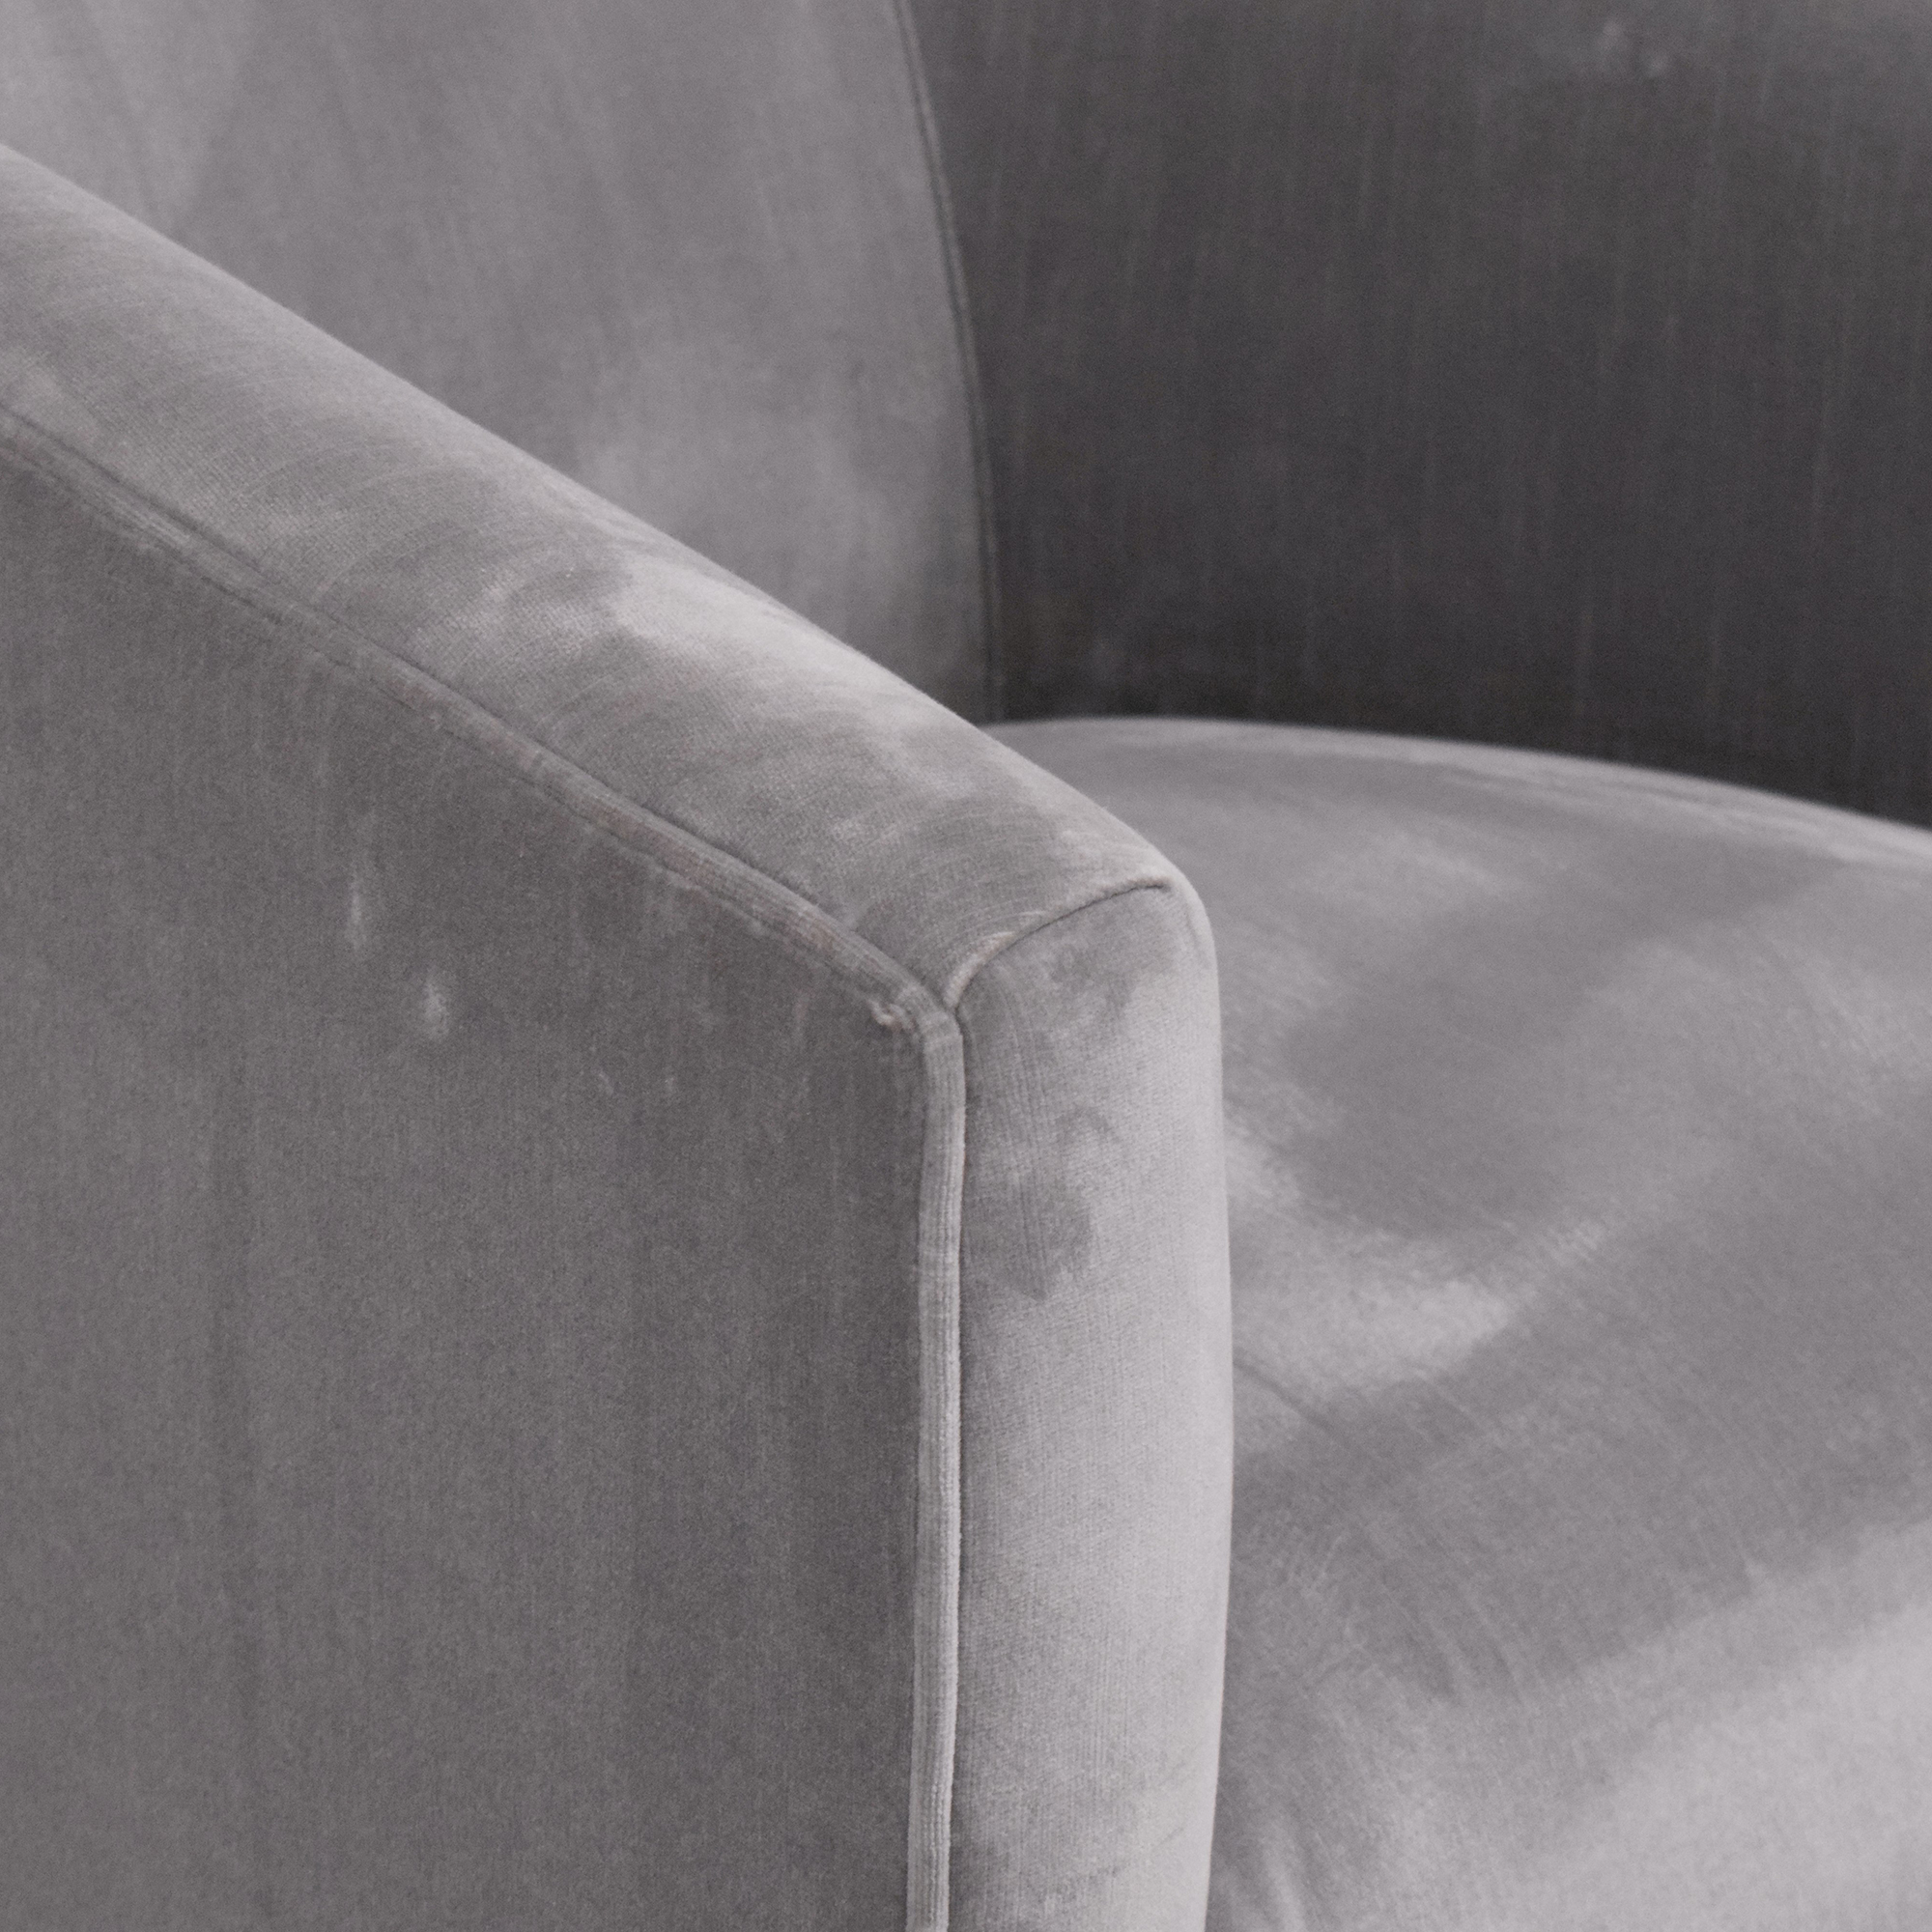 Restoration Hardware Restoration Hardware 1950s Italian Shelter Arm Swivel Chair discount